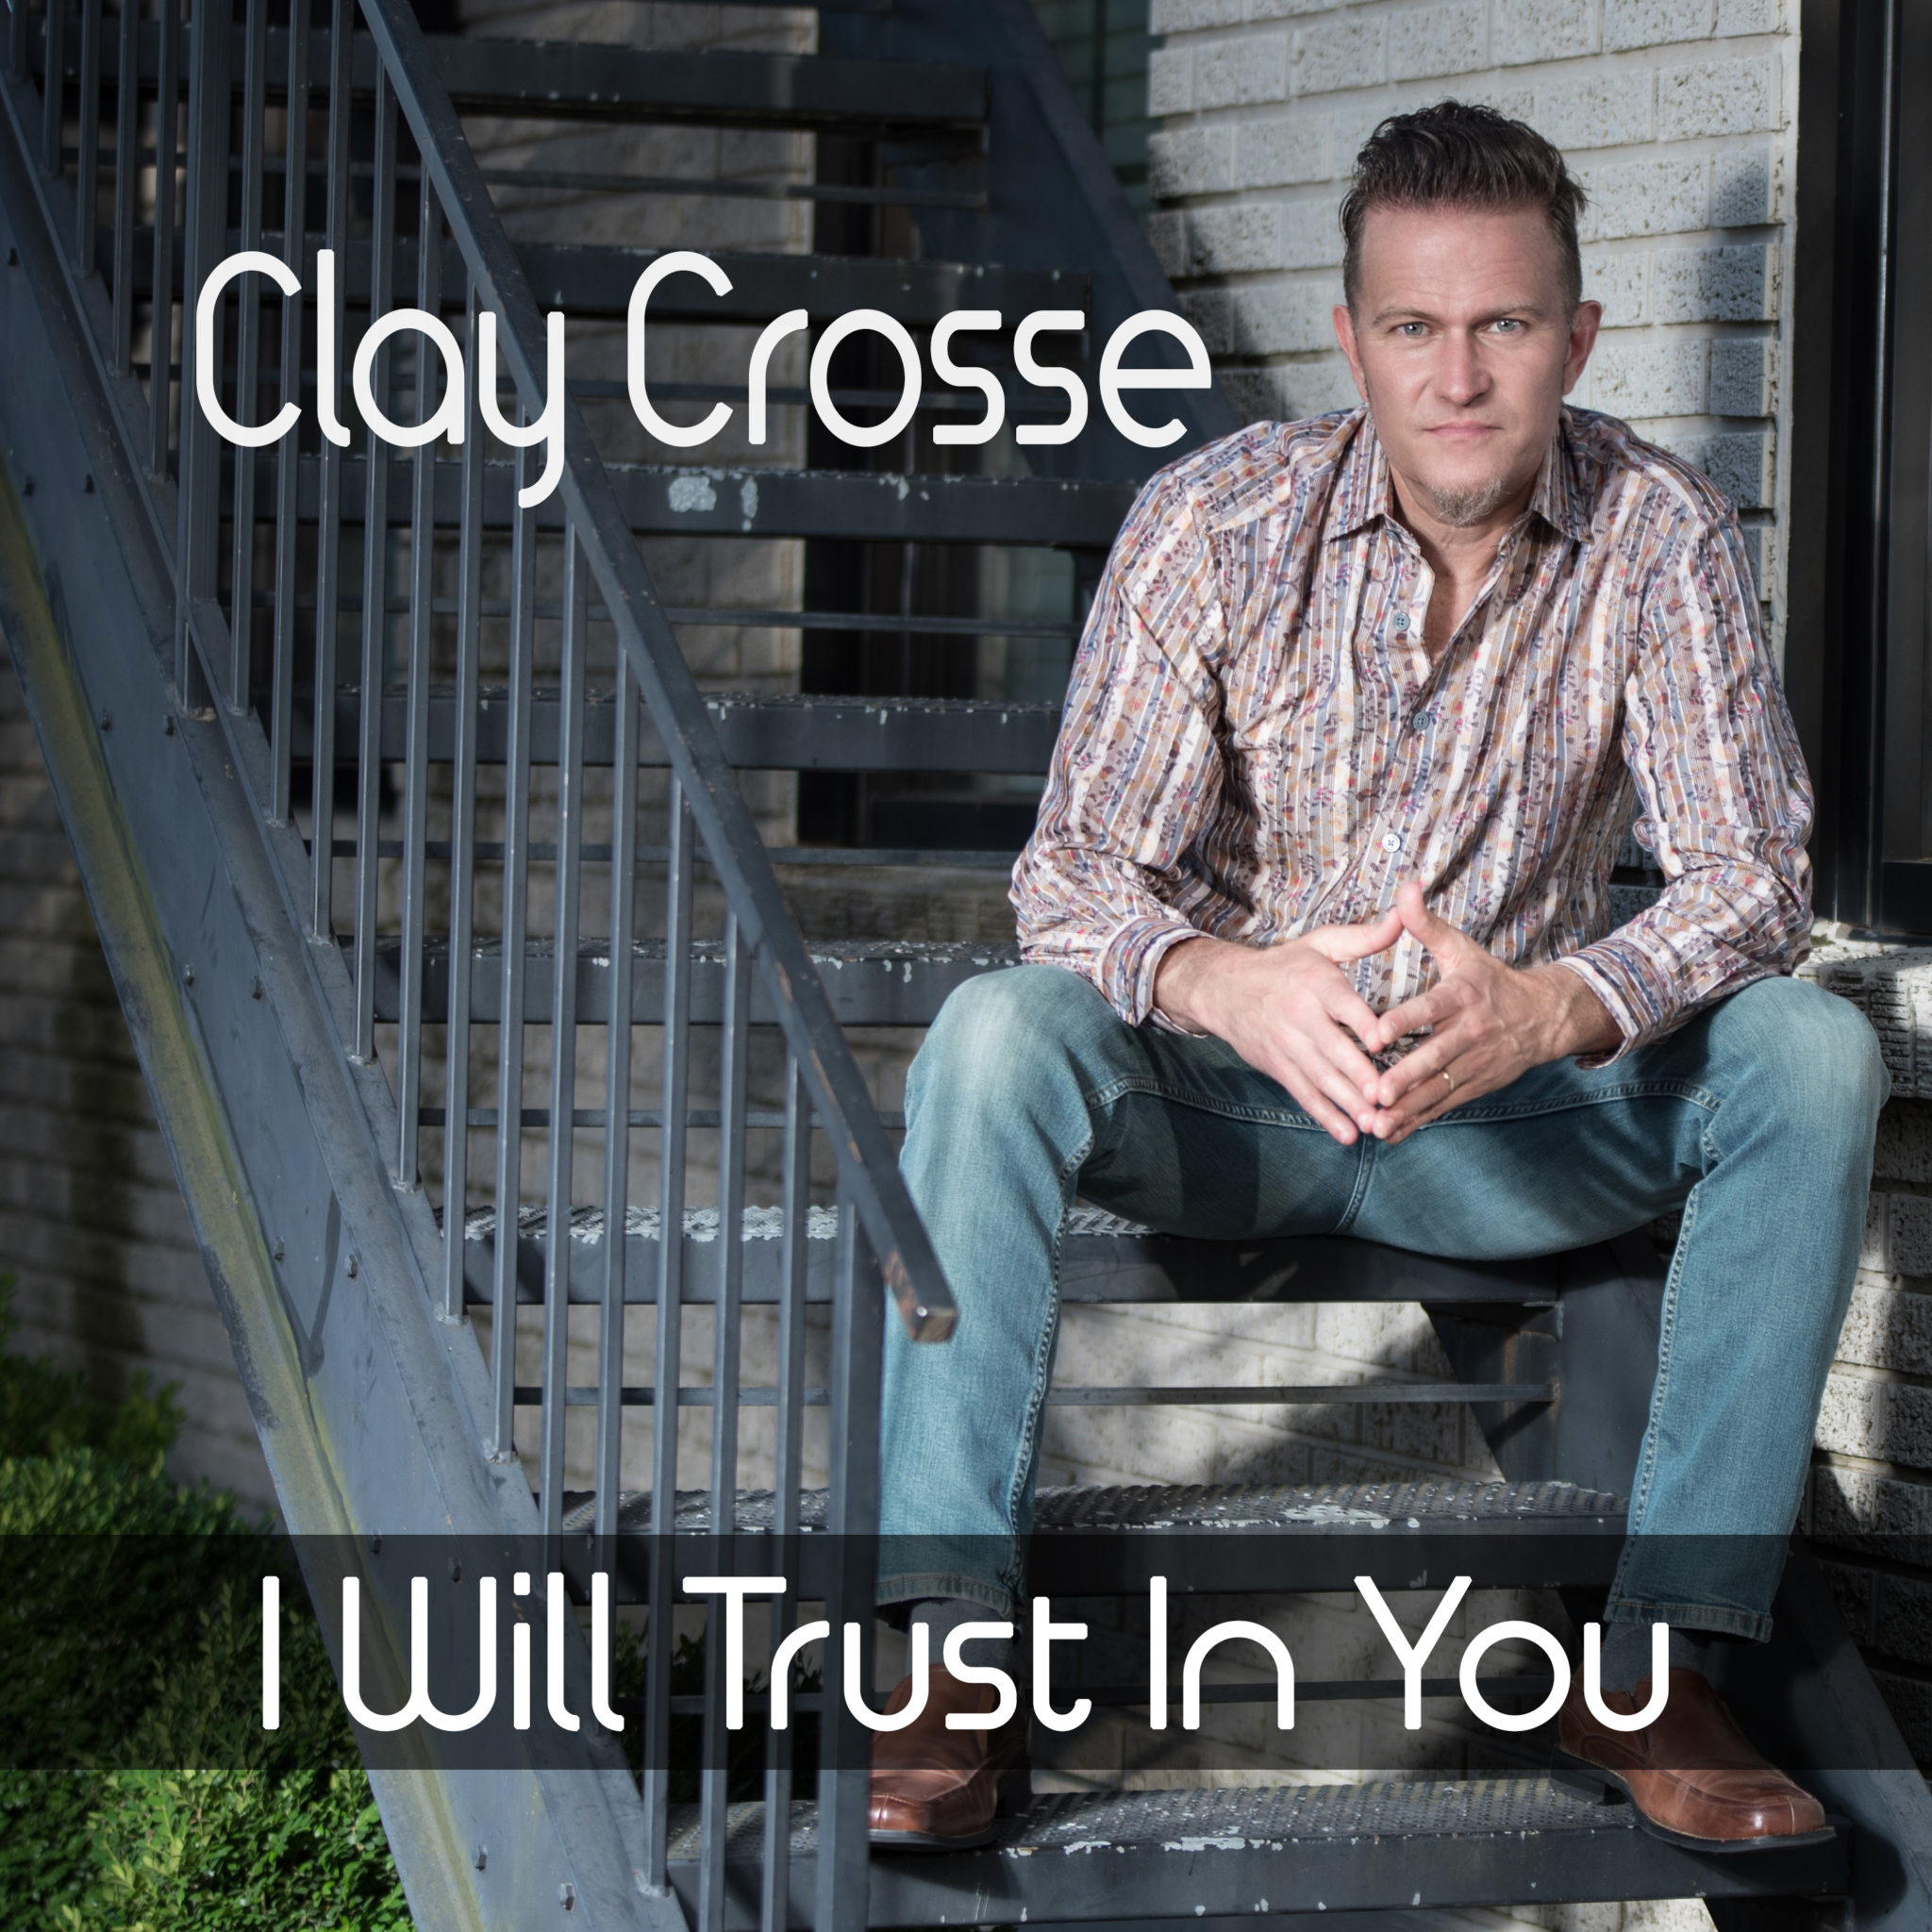 CLAY CROSSE RELEASES NEW SINGLE TO ITUNES